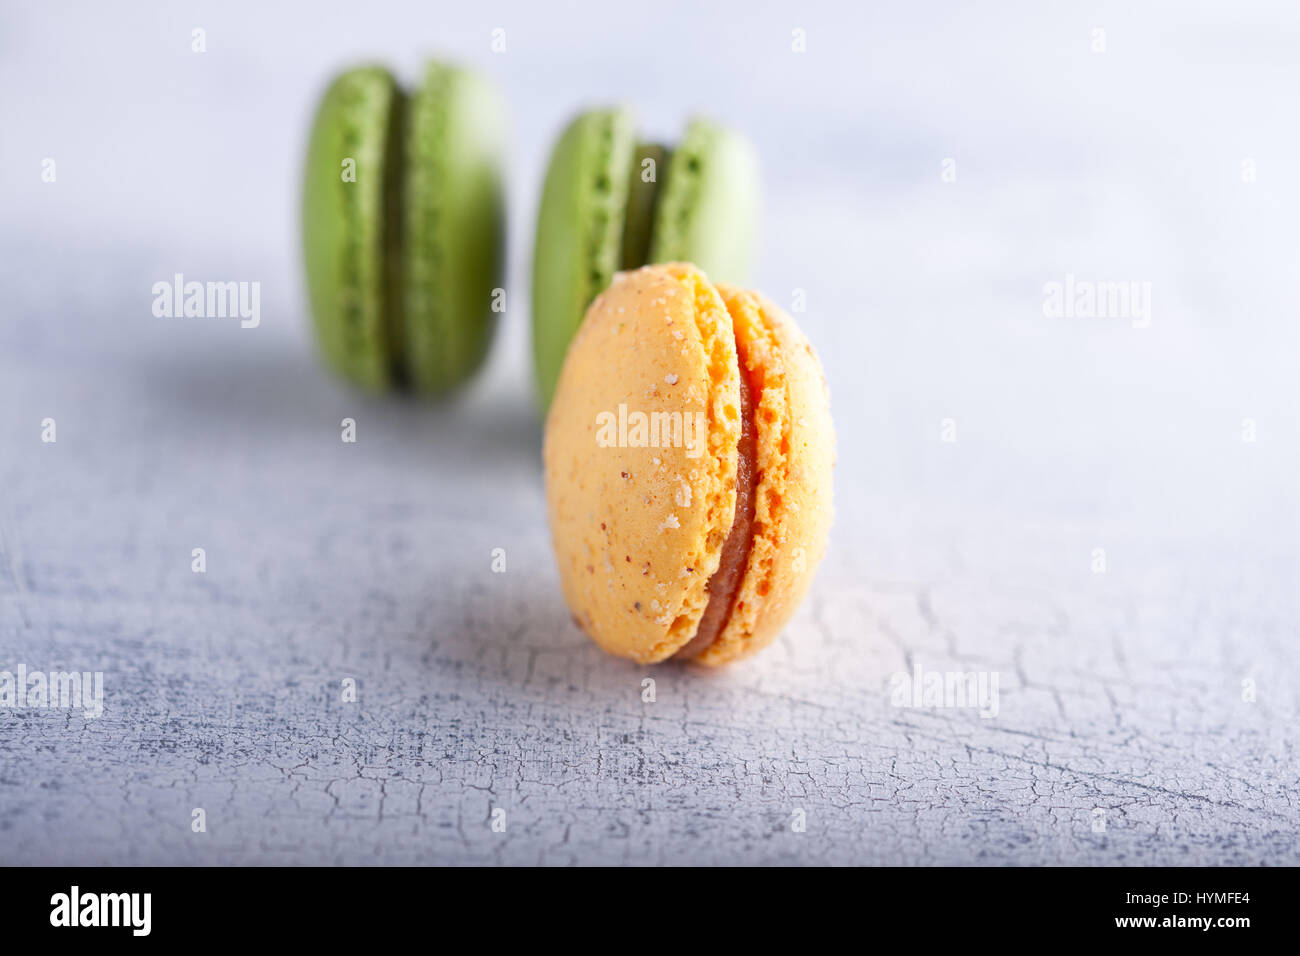 Almond cookies French macaroons - Stock Image